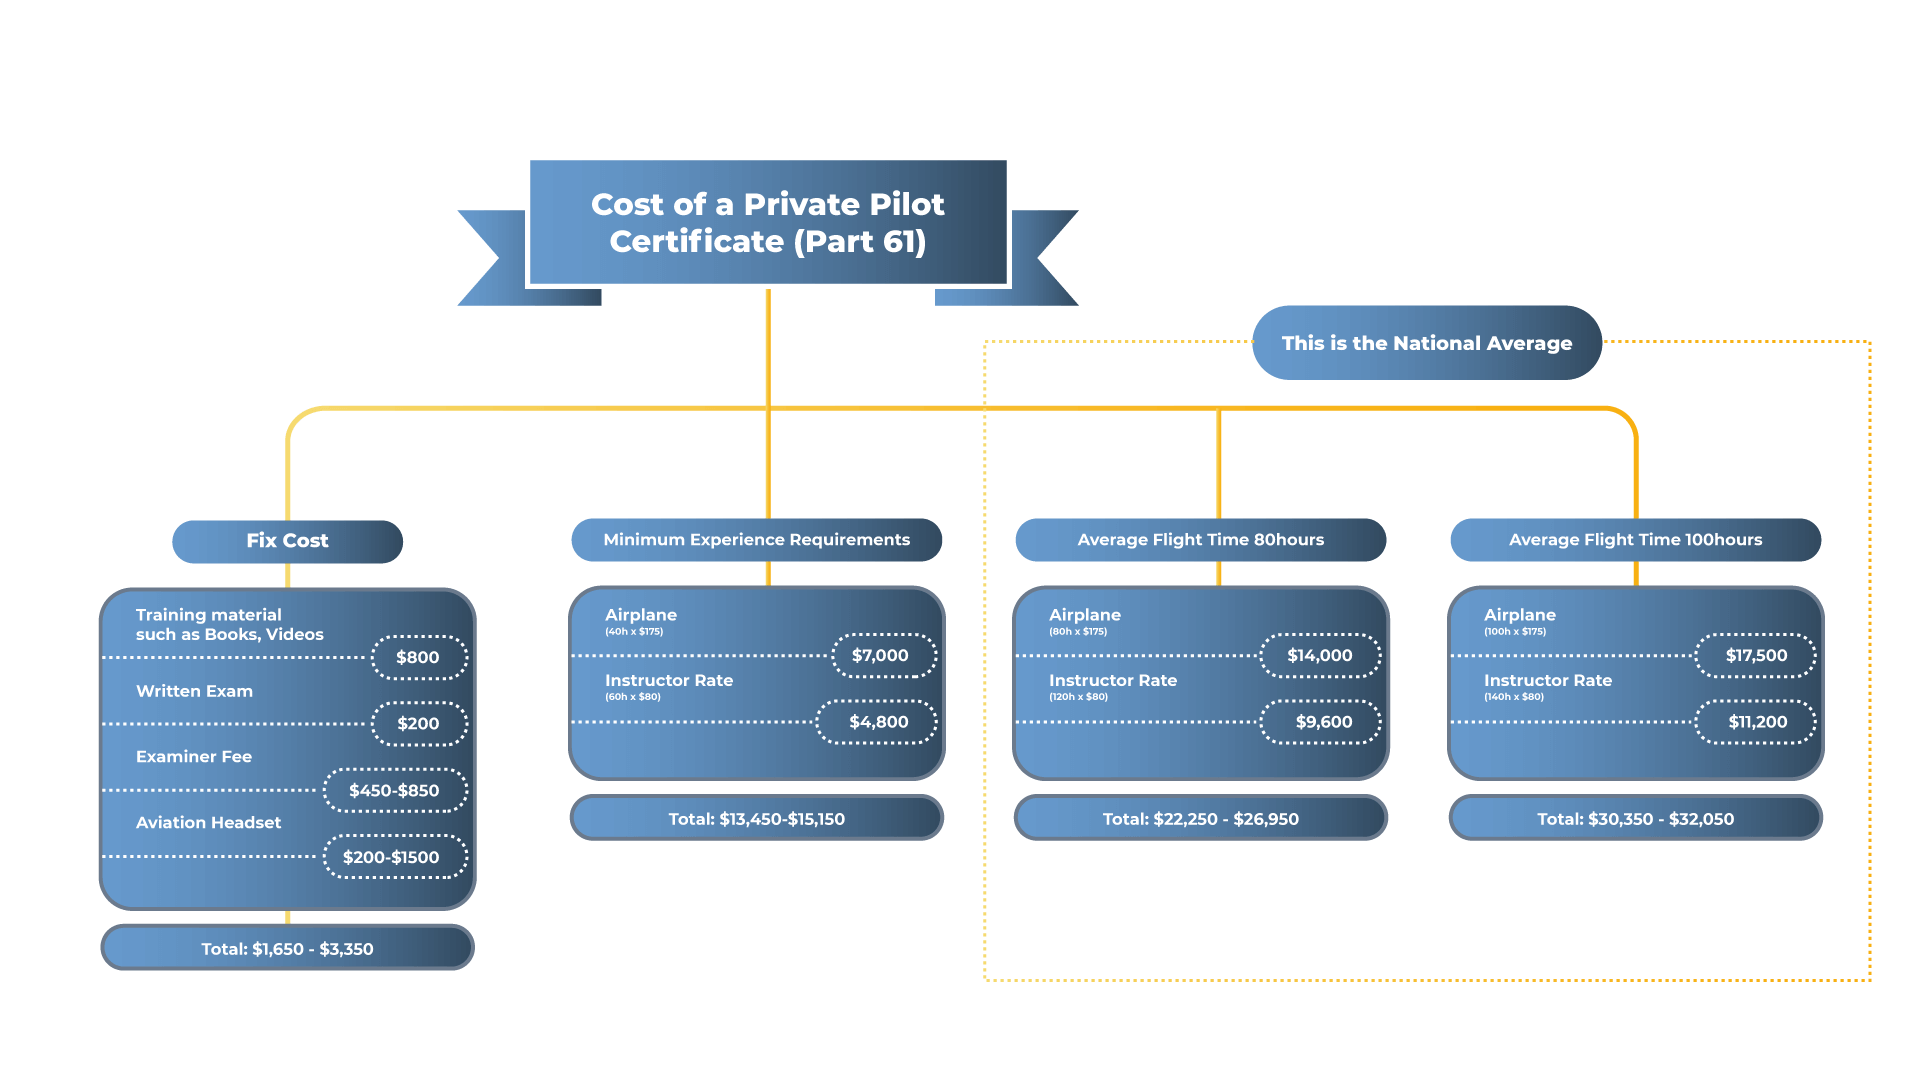 Cost_of_Private_Pilot_certificate_61__New_York_City